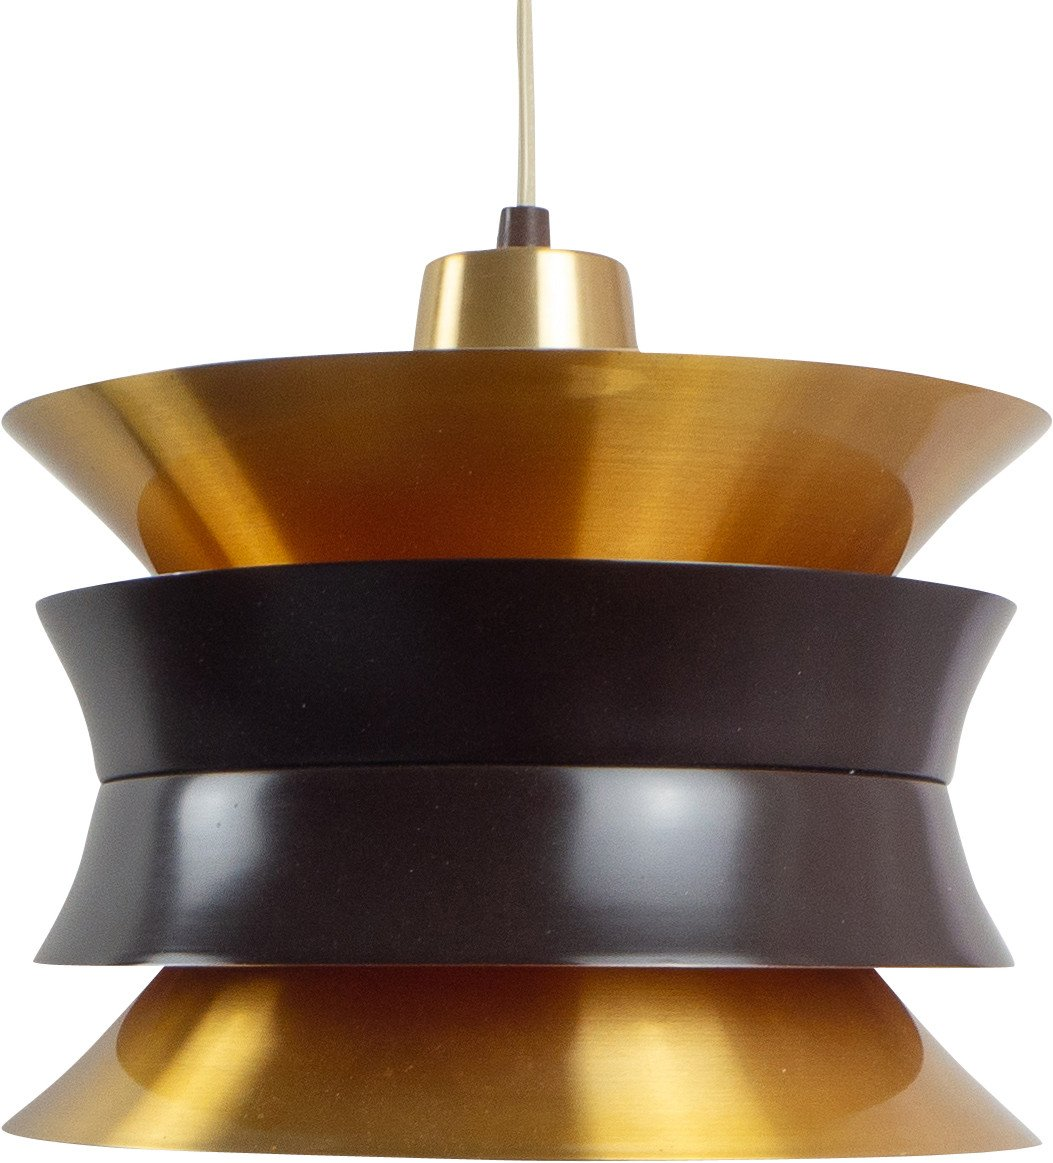 Pendant Lamp by C. Thore for Granhaga Metallindustri, Sweden, 1960s